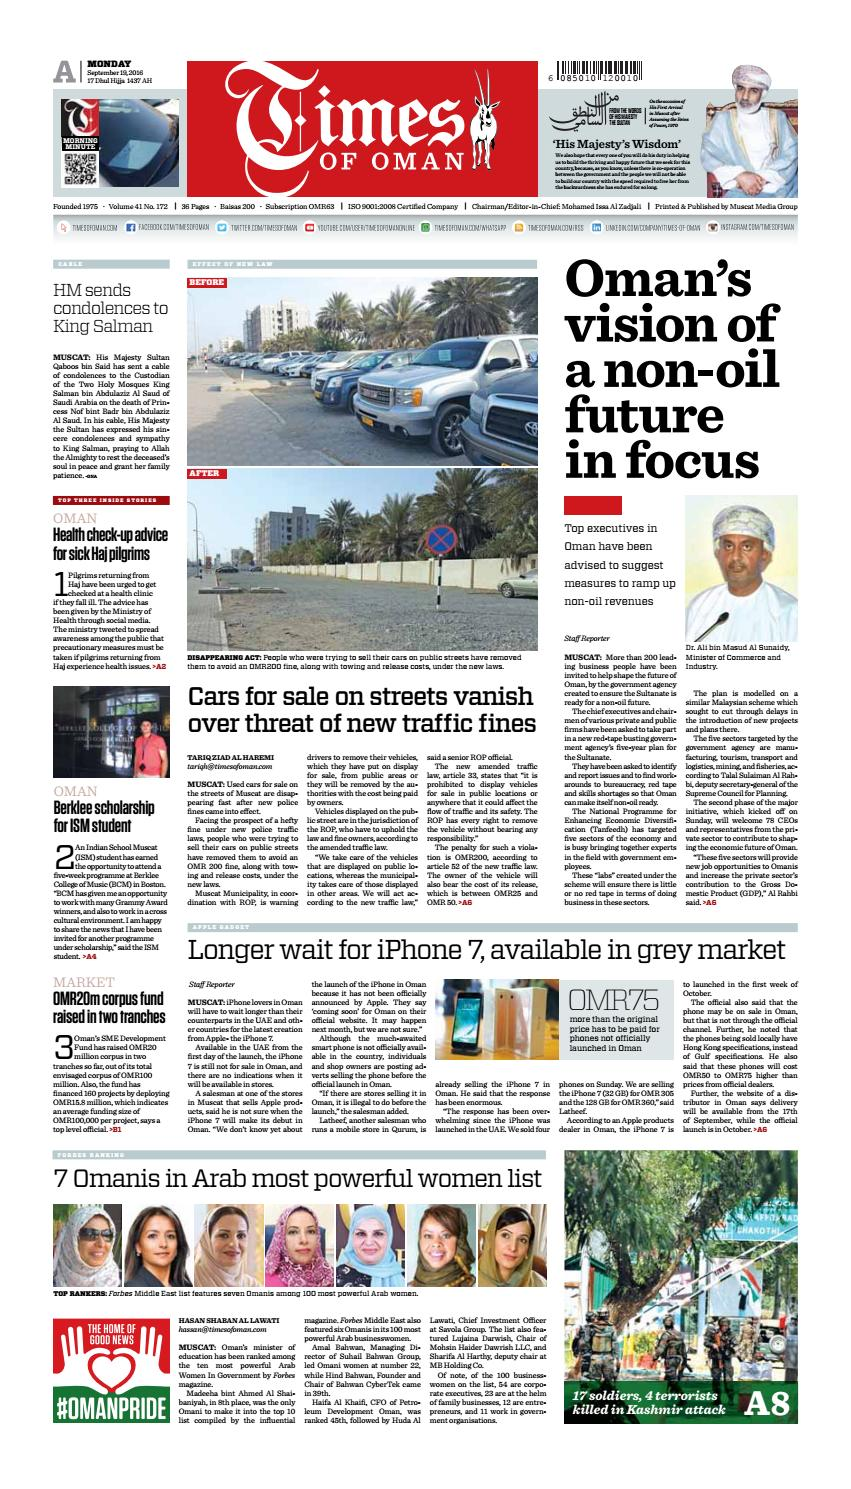 Times of Oman - September 19, 2016 by Muscat Media Group - issuu